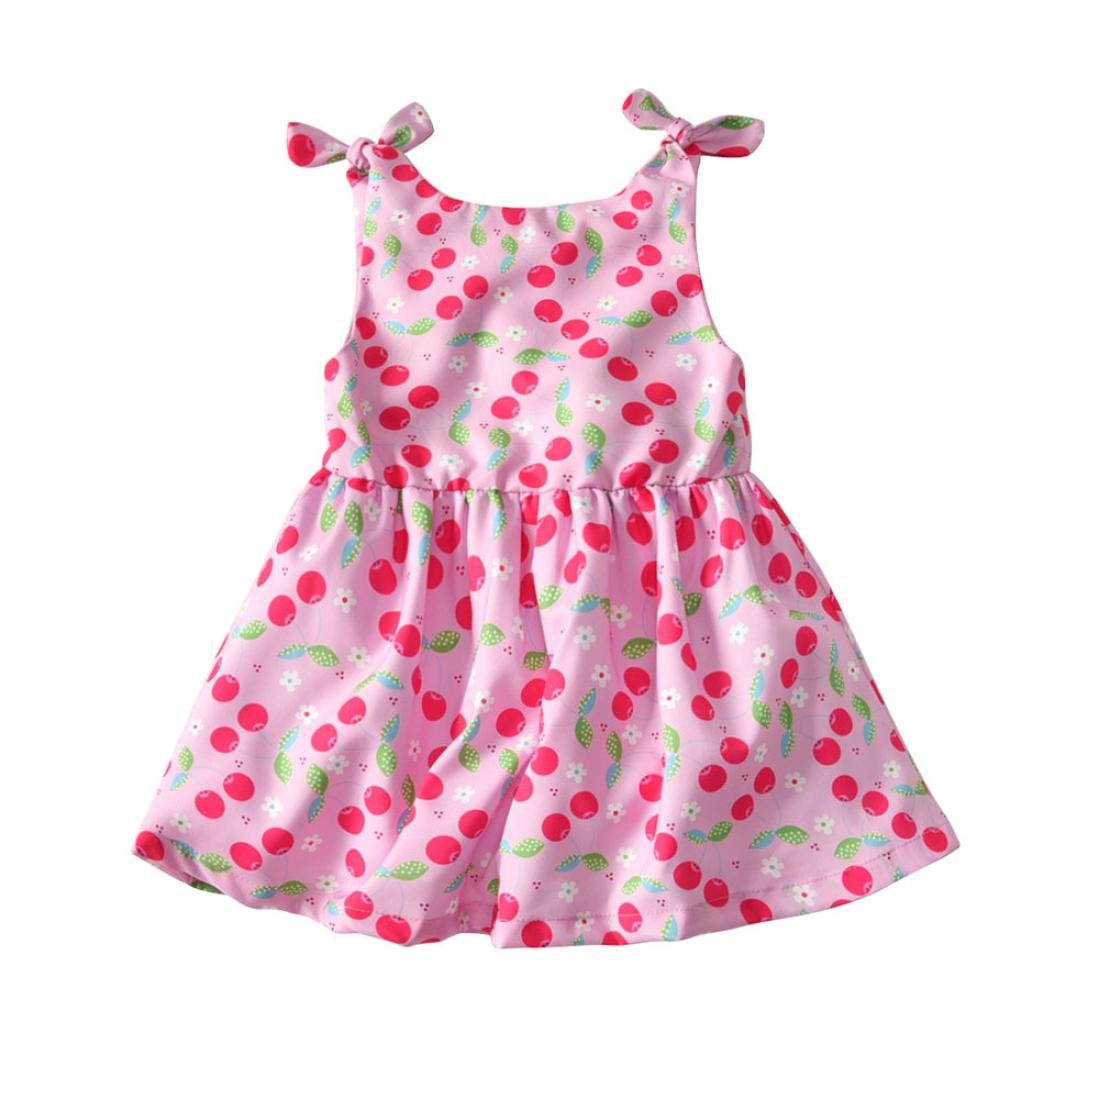 Toddler Baby Girls Sleeveless Off shoulder Solid Tulle Skirt Flowers Party Princess Dresses Summer 2019 Infant Clothing Strong Packing Clothing Sets Mother & Kids